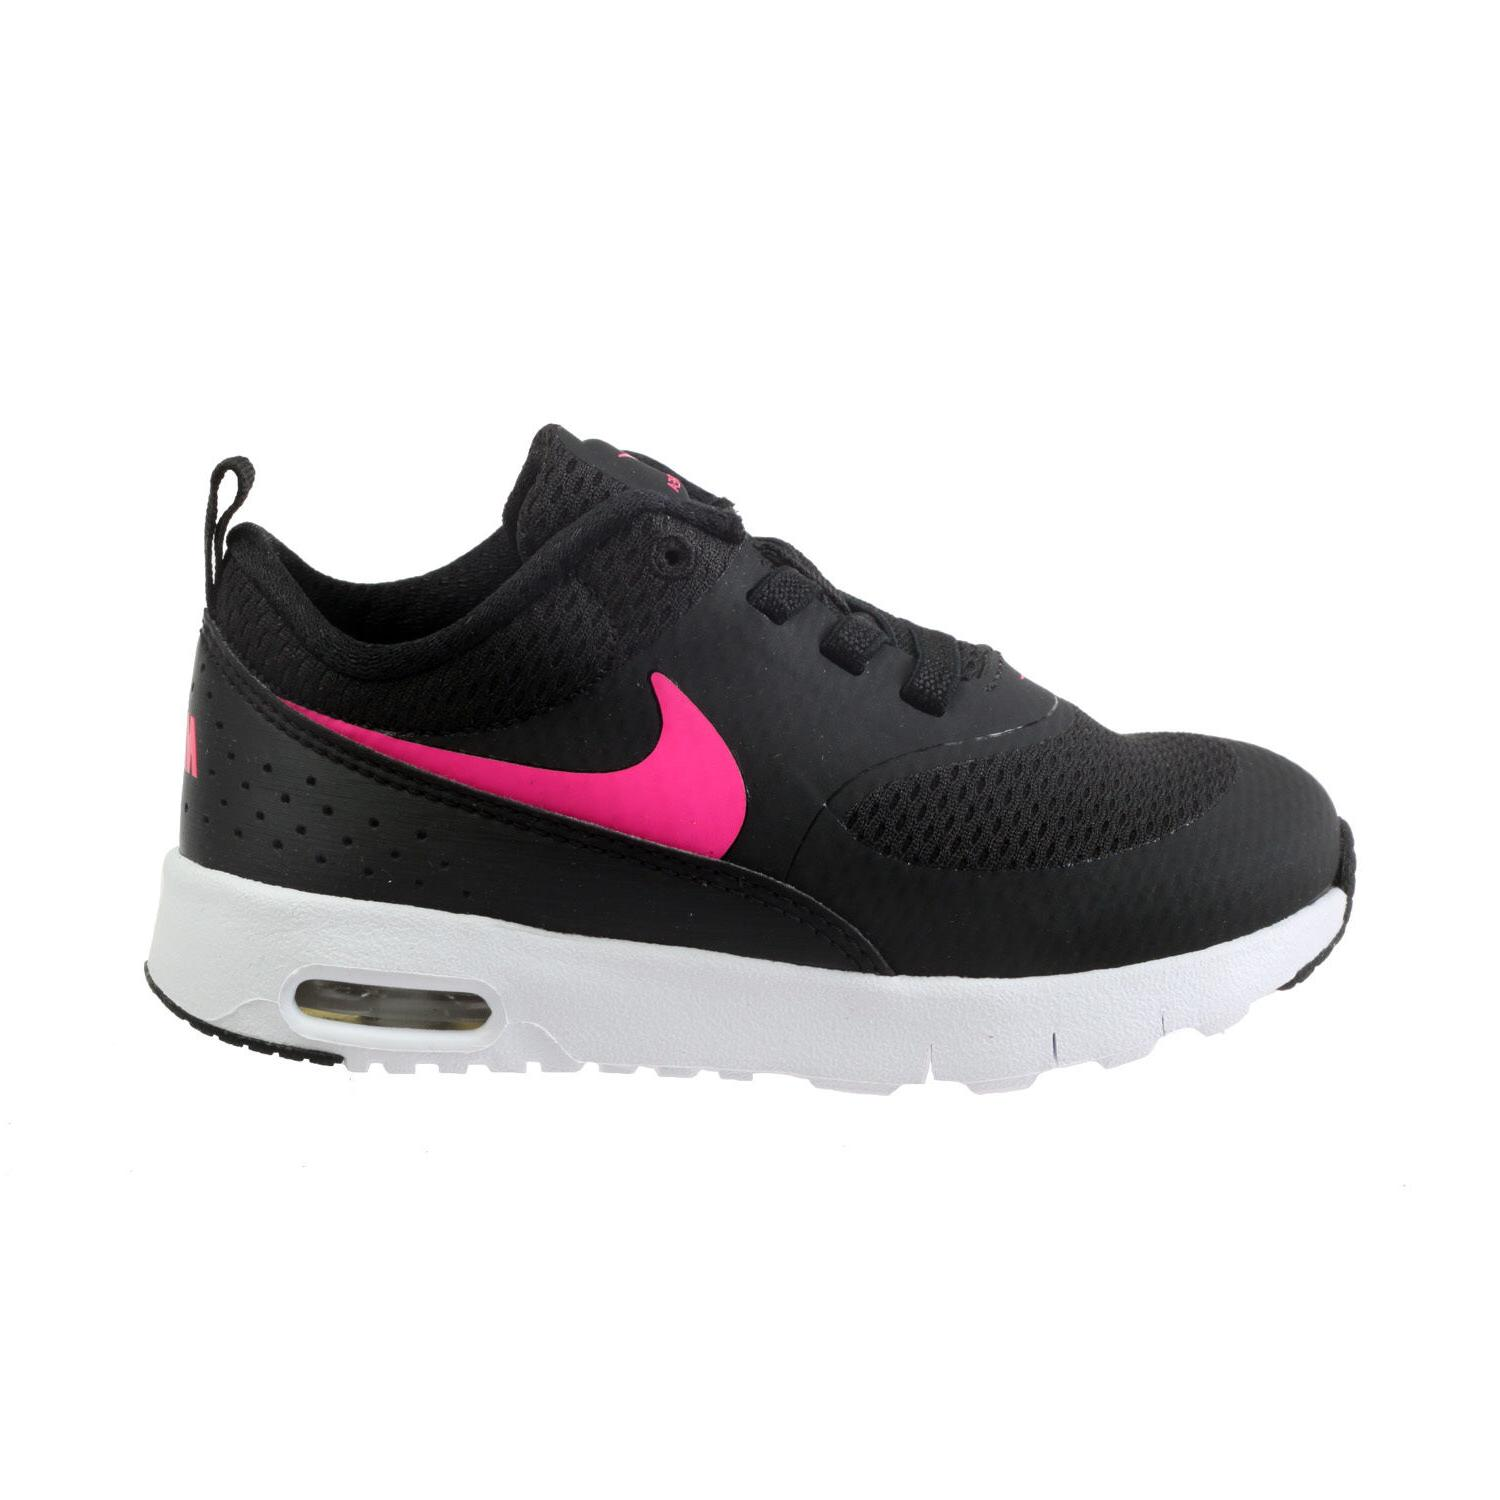 Toddler Girl's Nike 'Air Max Thea' Sneaker, Size 7 M - Black